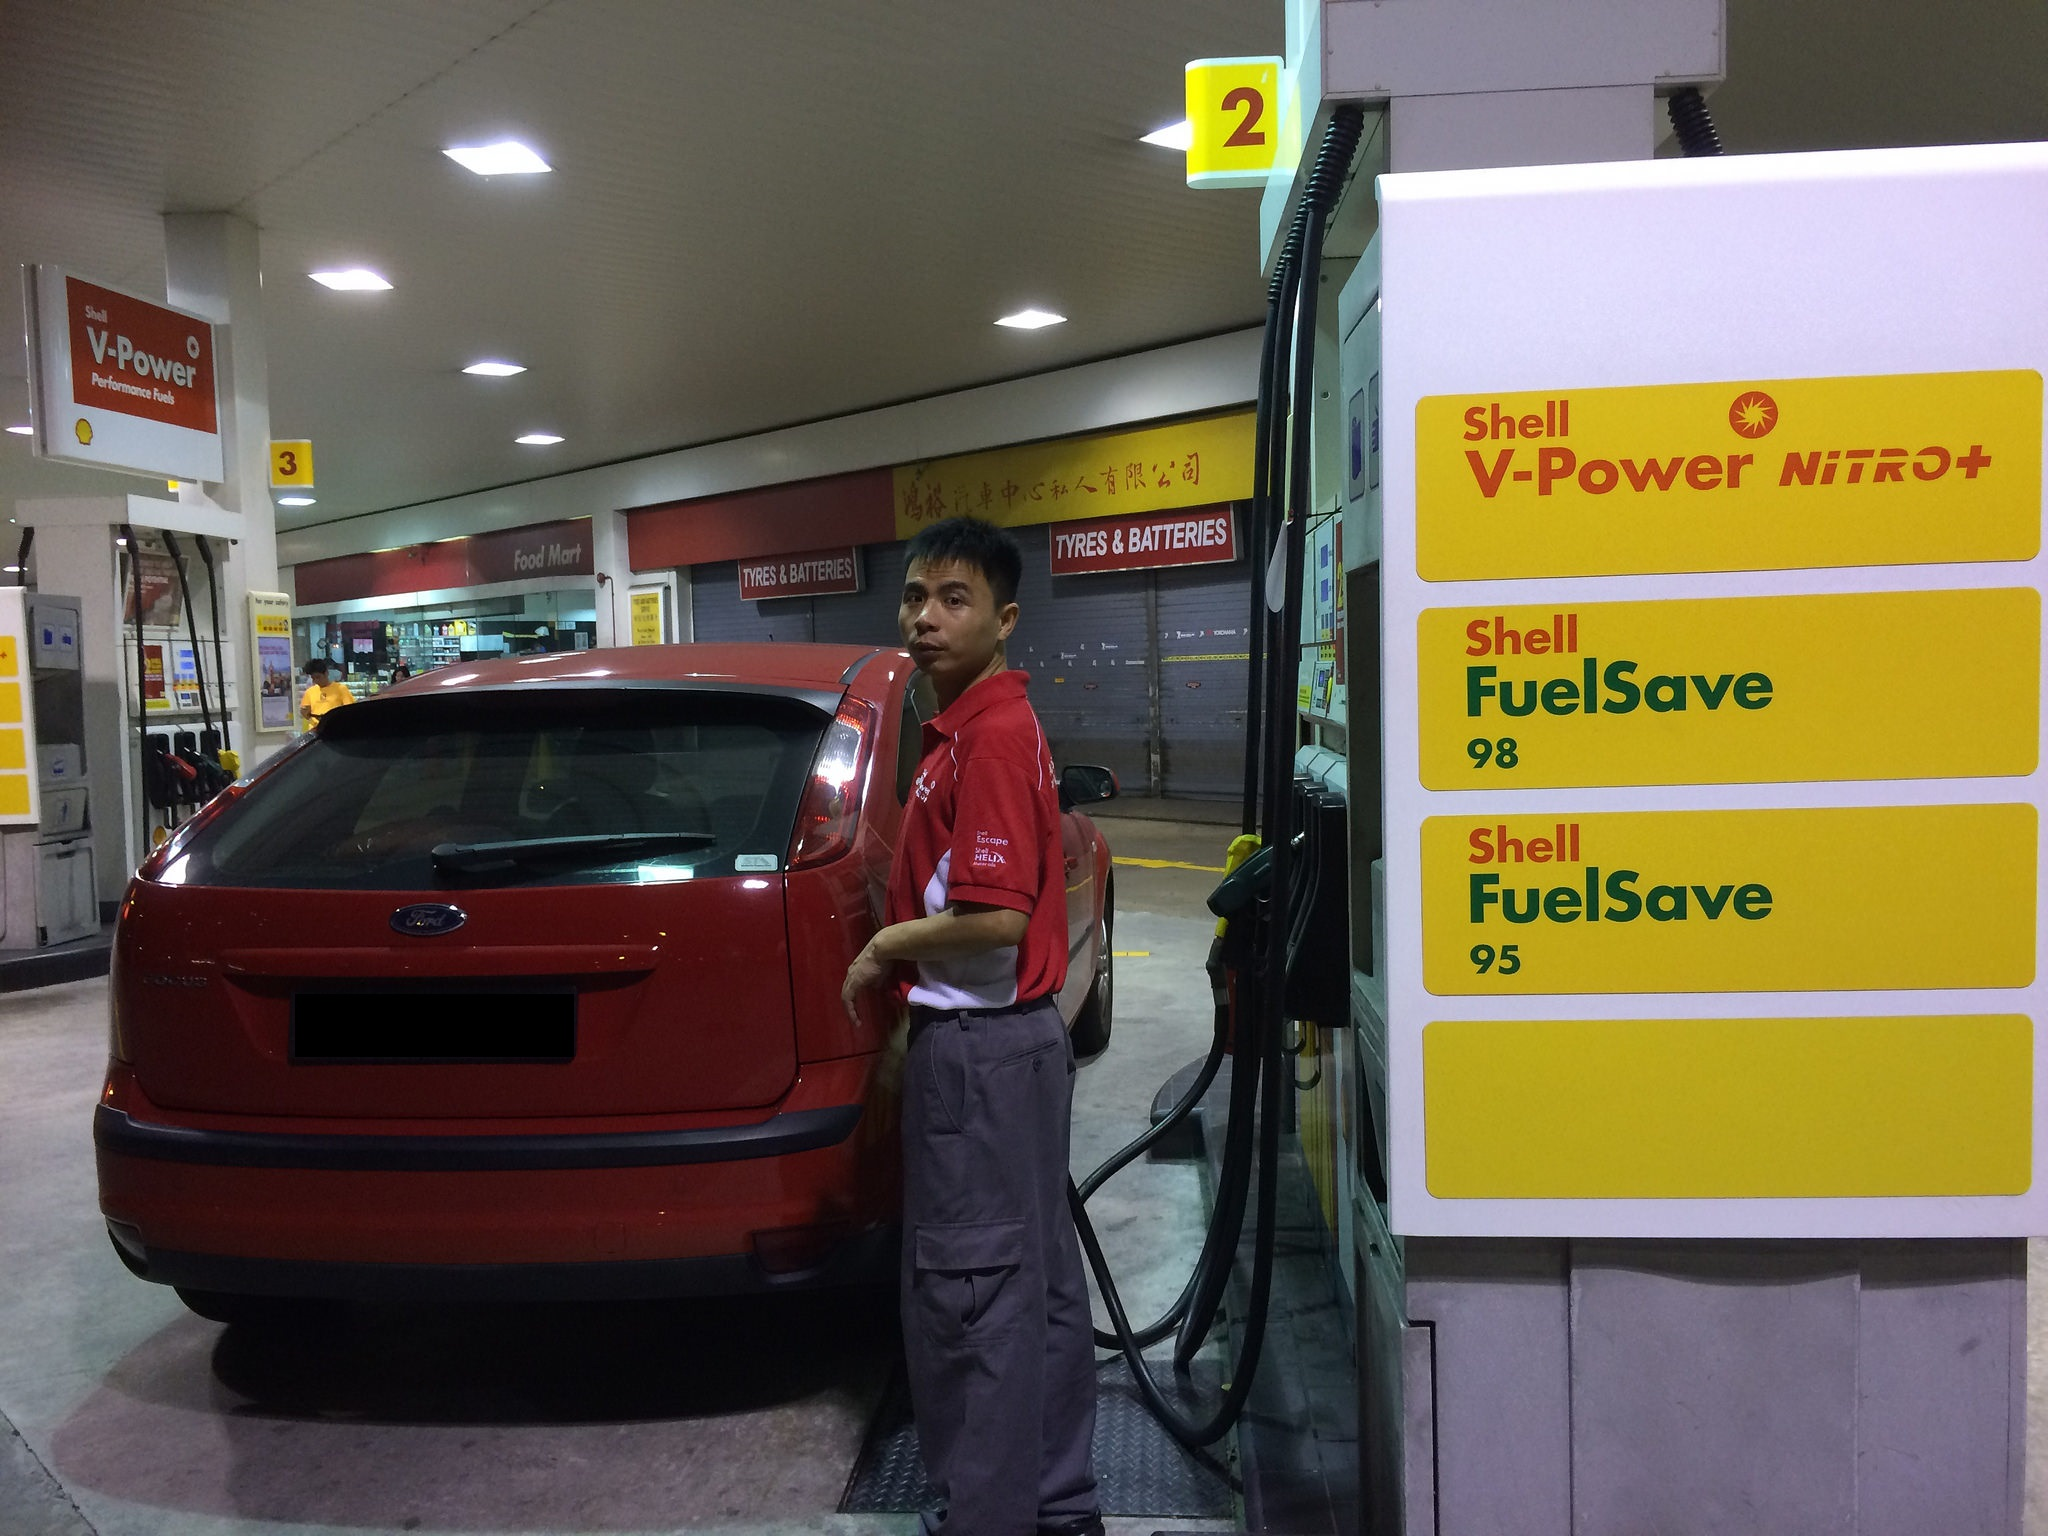 5 reasons why you should switch to Shell V-Power Nitro+